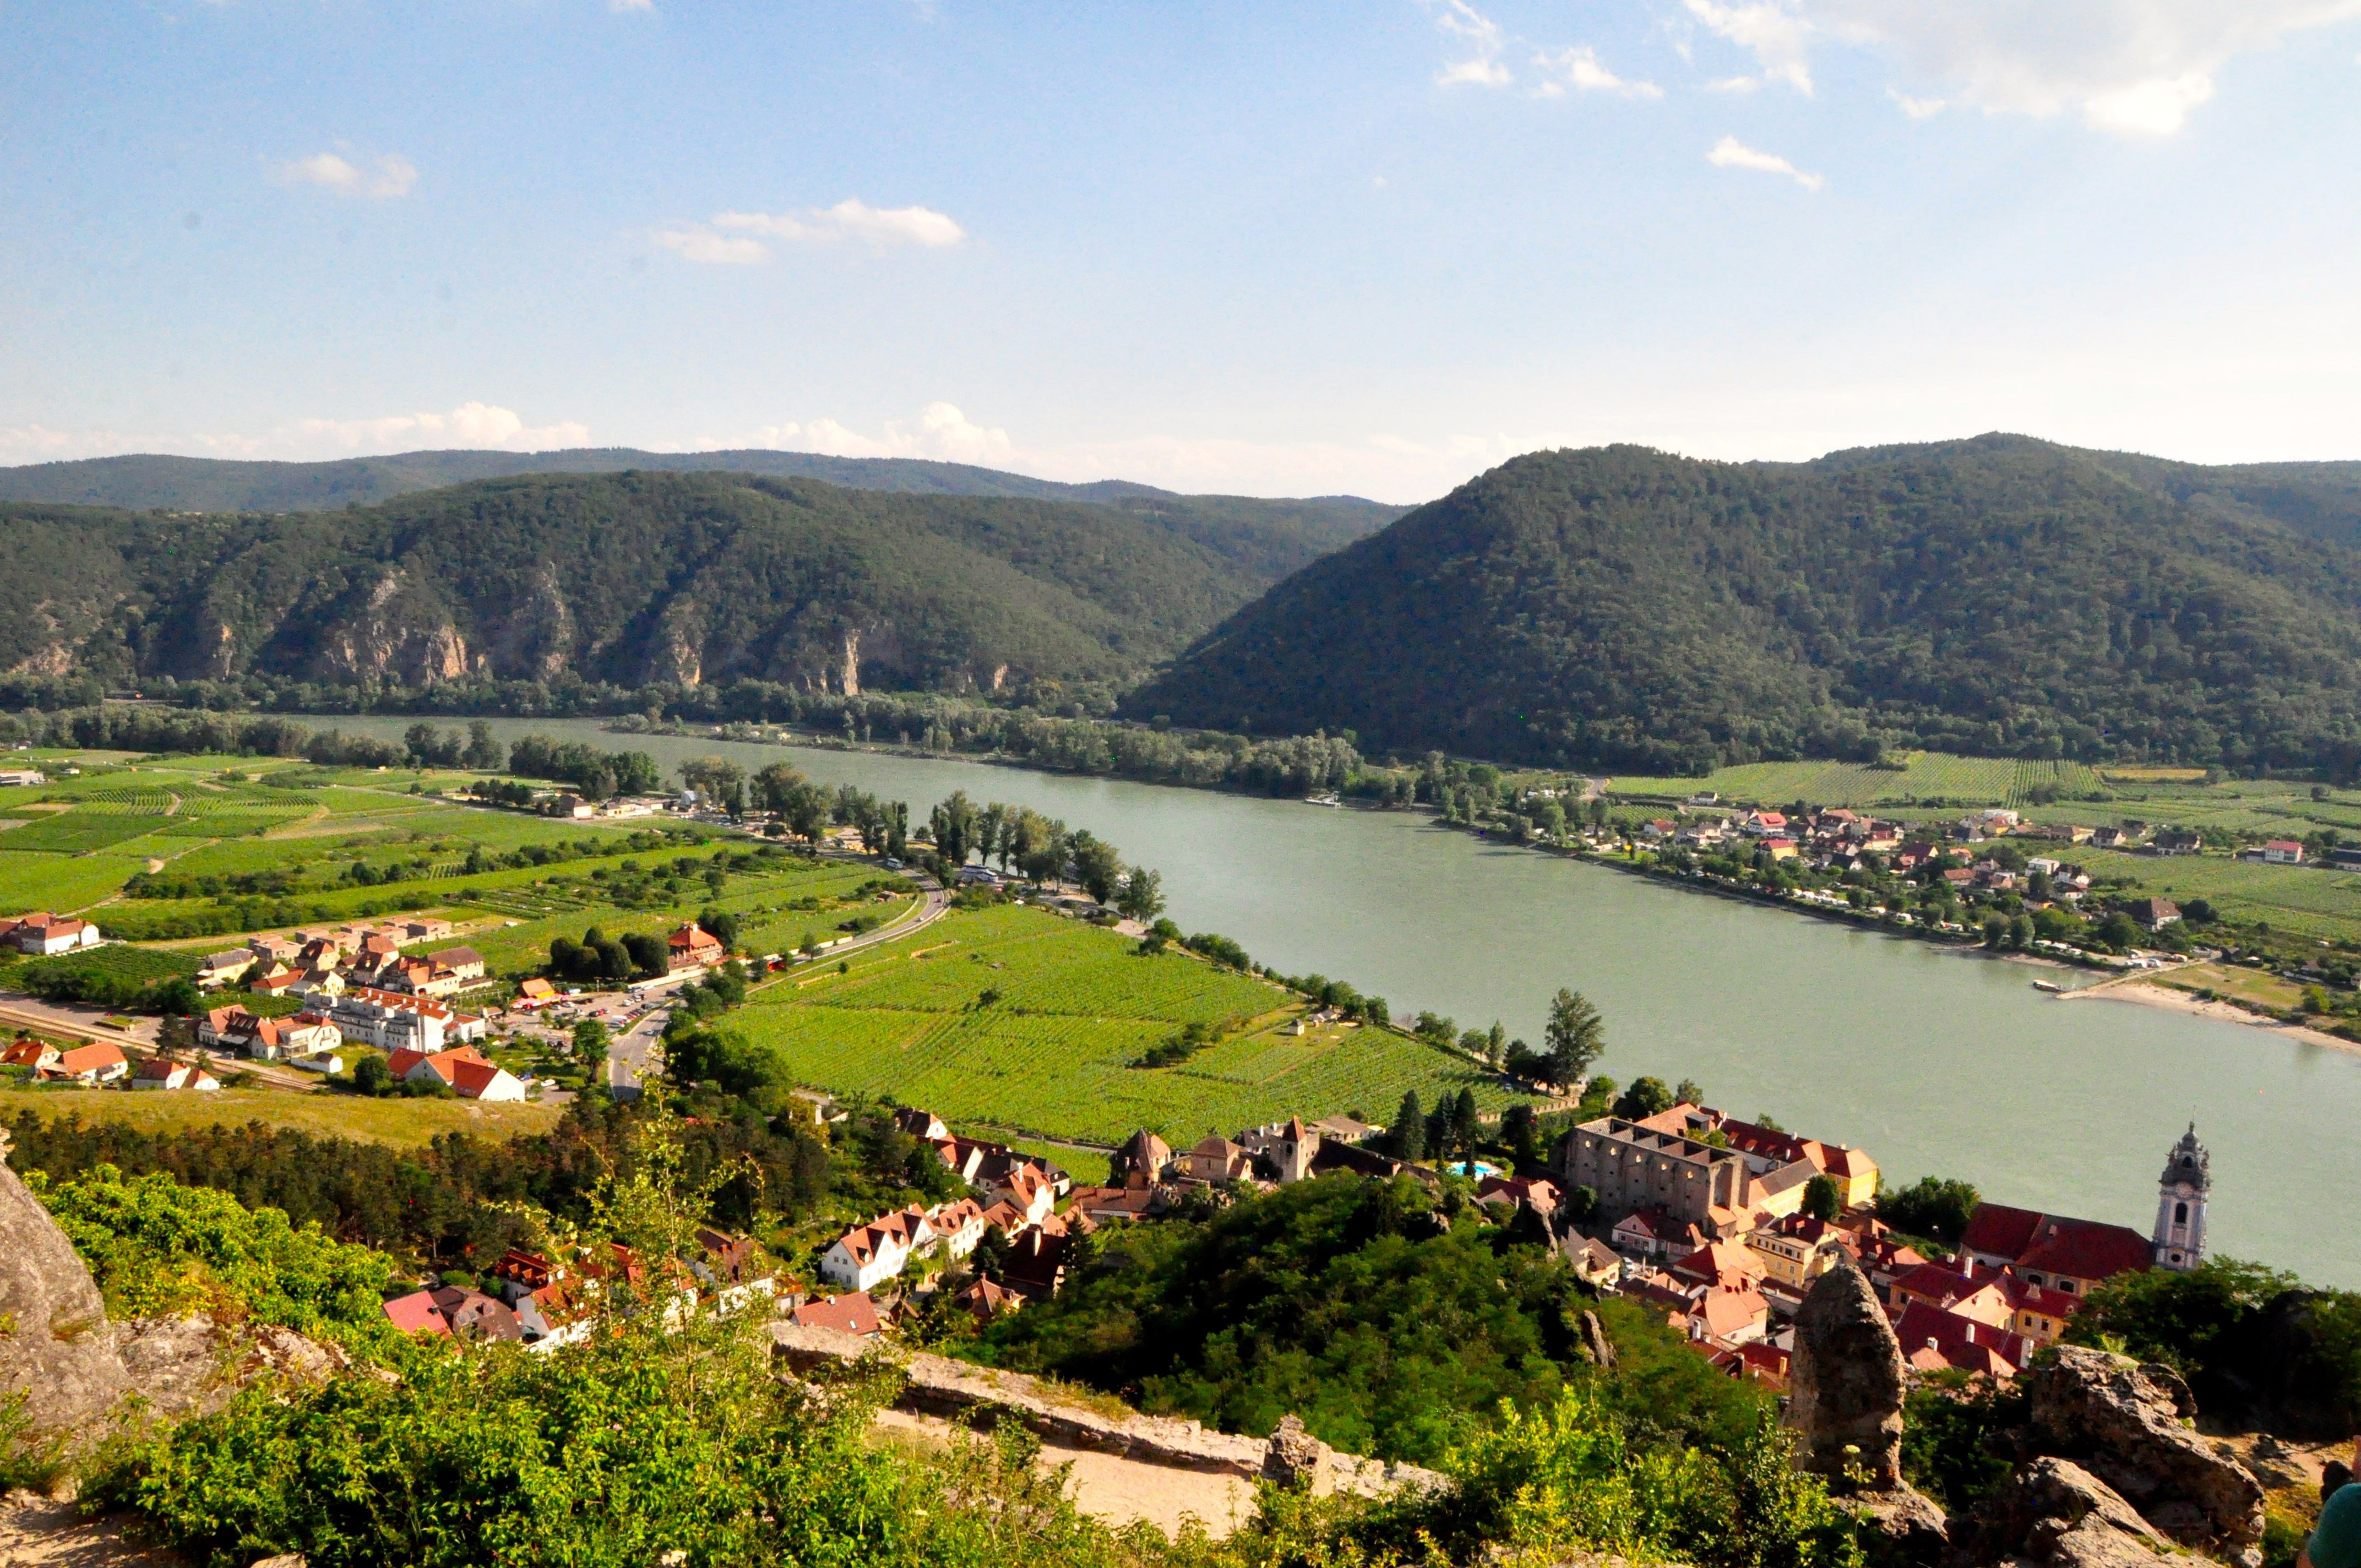 The Danube River viewed from the ruins of the castle where Richard the Lionhearted was held captive in Dürnstein during the Crusades, sent via T-Mobile from the ruins